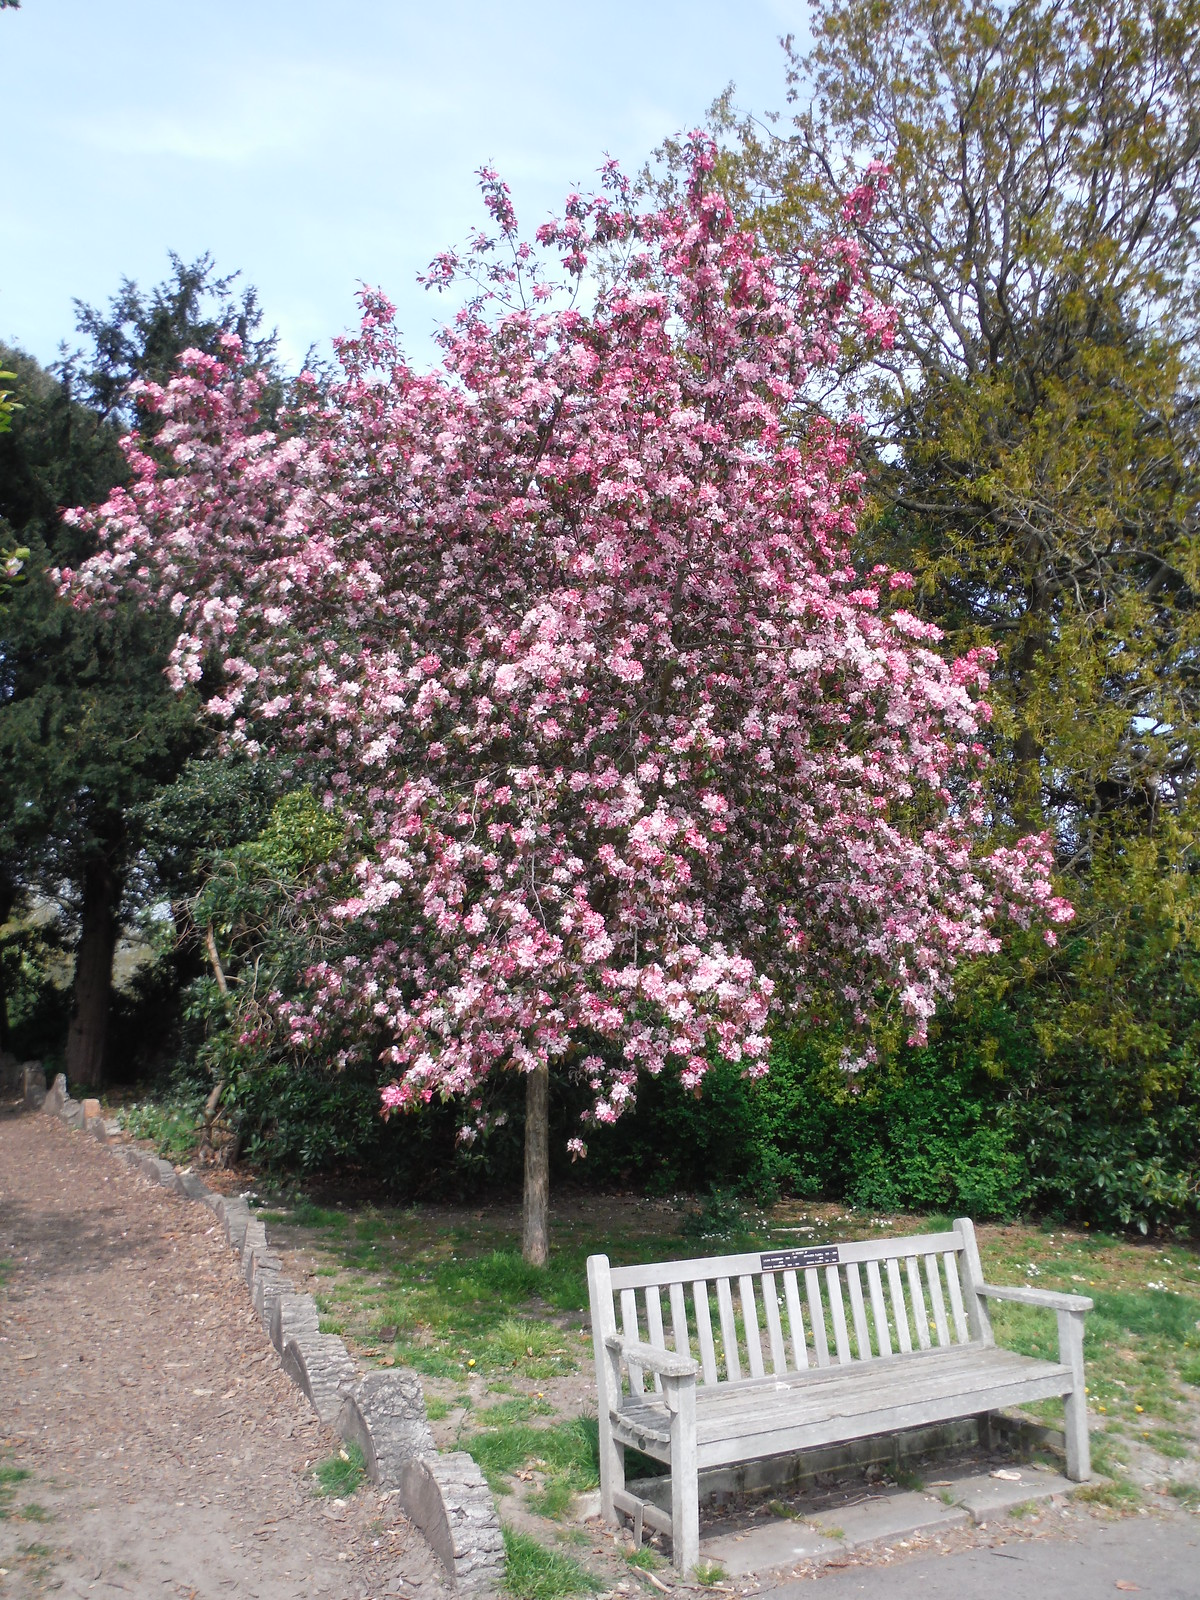 Some Flowering Tree, with bench SWC Short Walk 46 - Beckenham Place Park (Ravensbourne to Beckenham Hill)